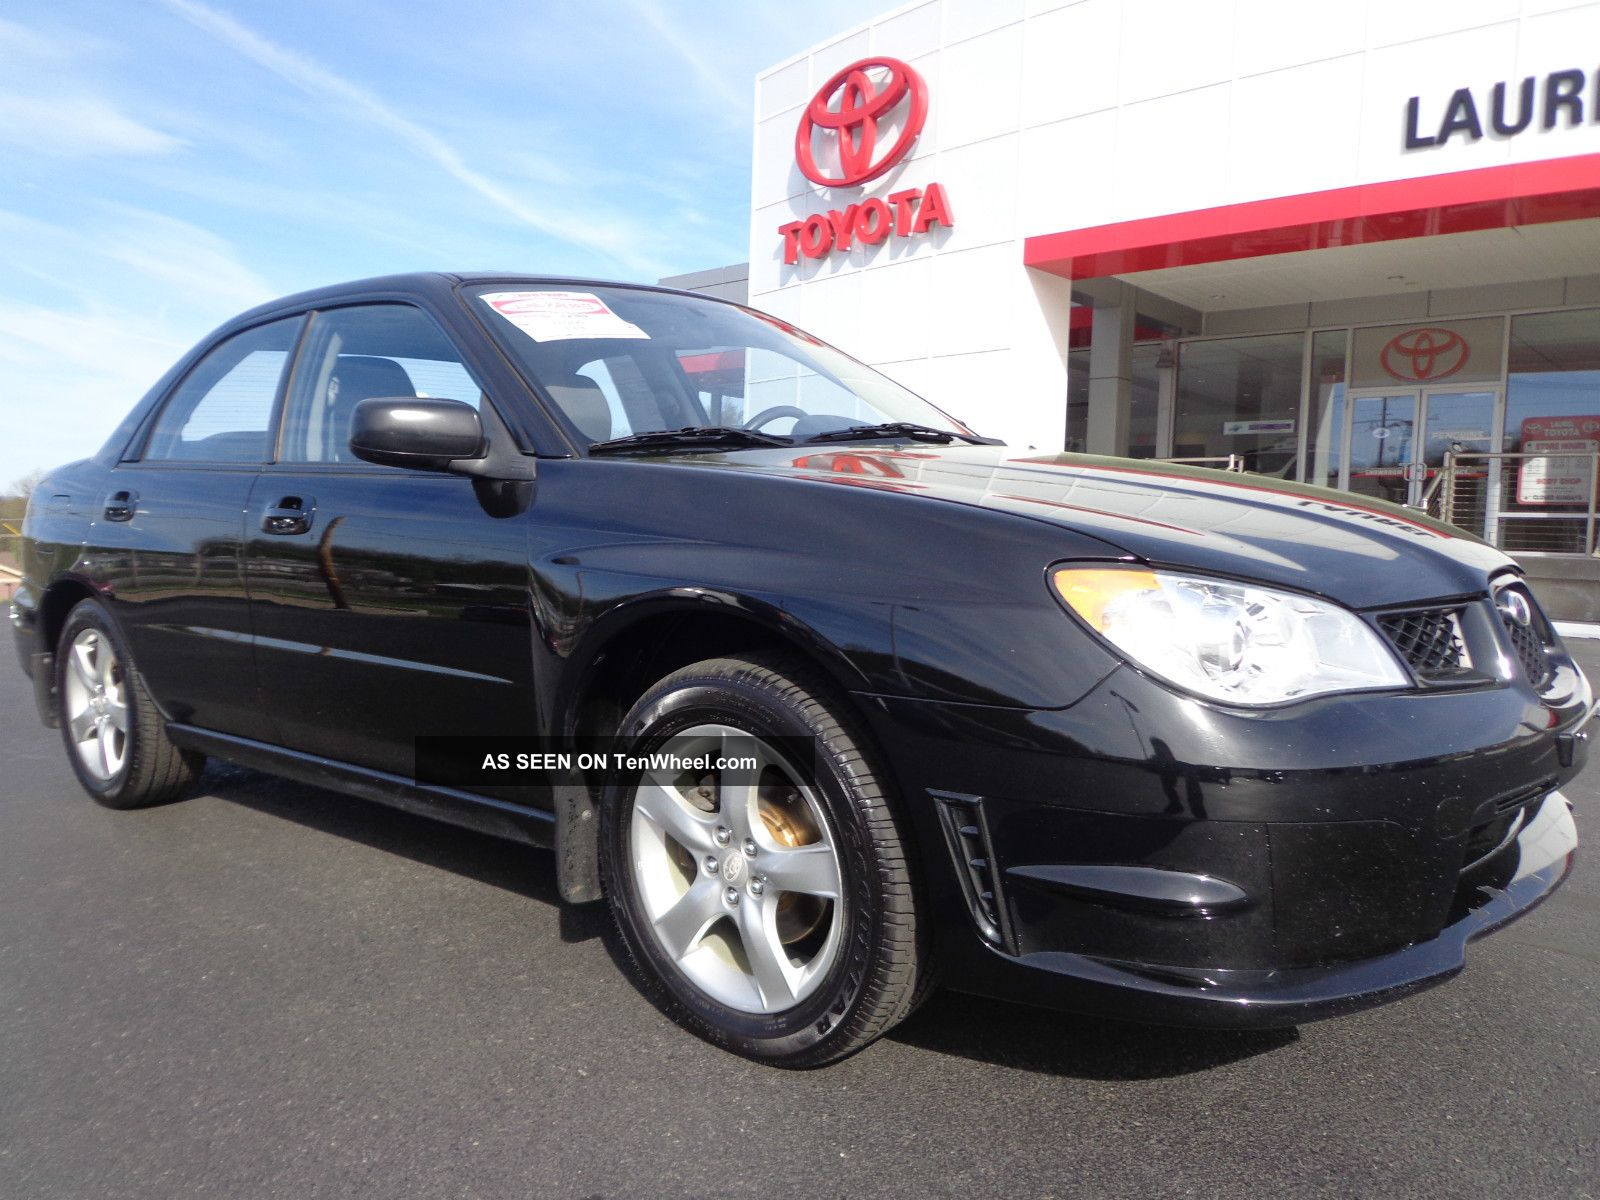 2007 Subaru Impreza 2.  5i 4 Cylinder 2.  5l Awd Automatic 83k Video Impreza photo